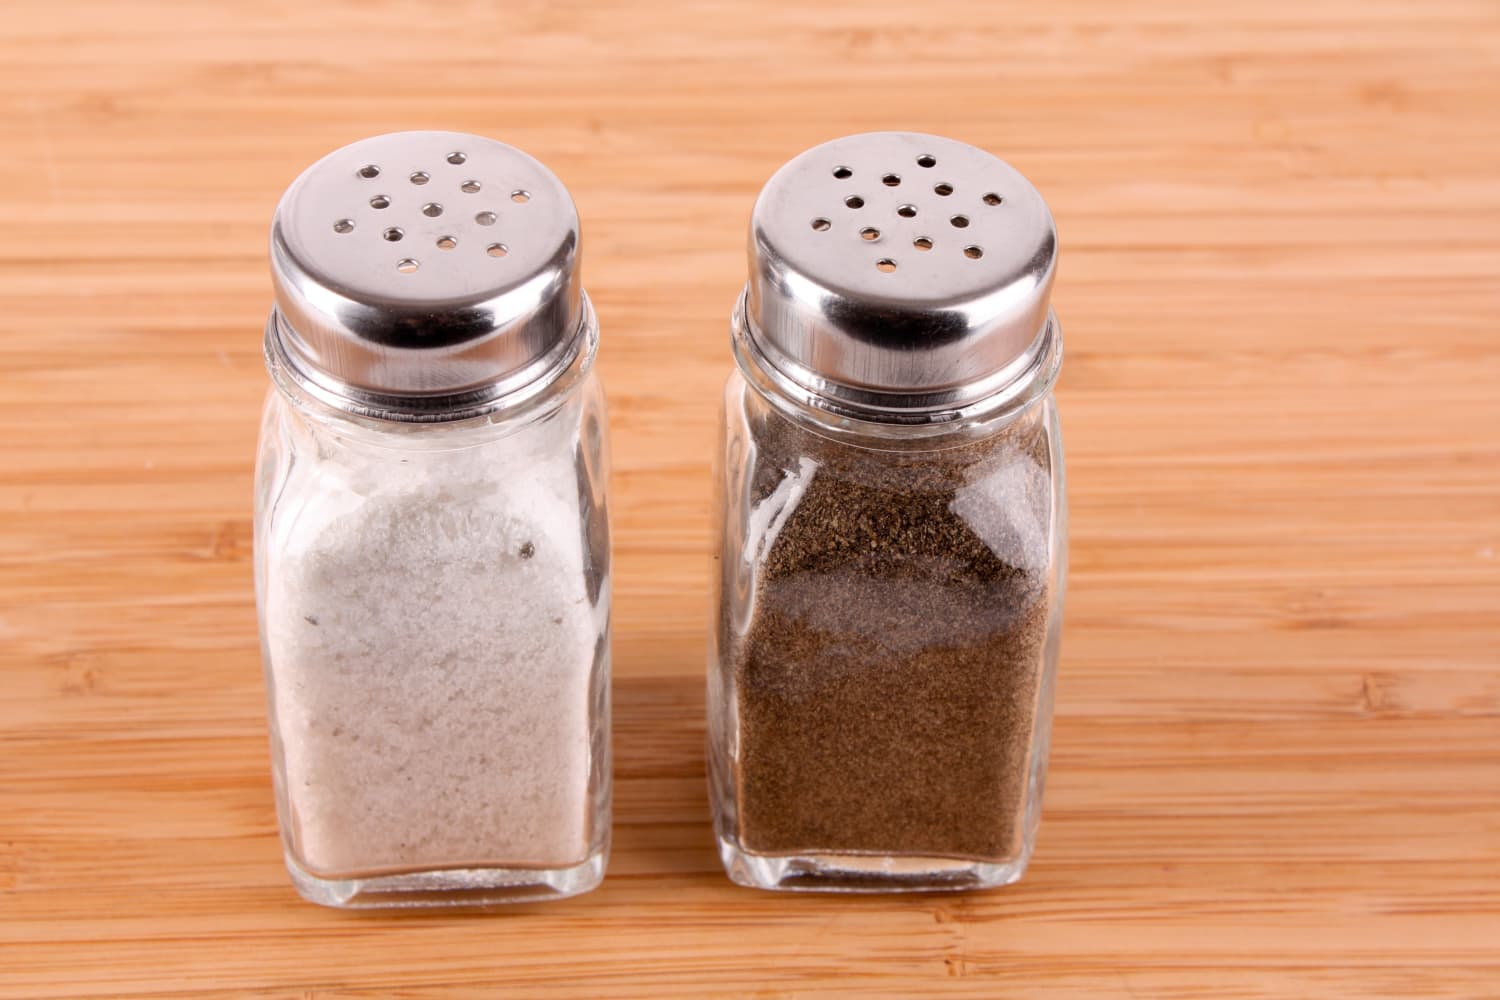 This Salt and Pepper Shaker Trick Is Blowing Up the Internet